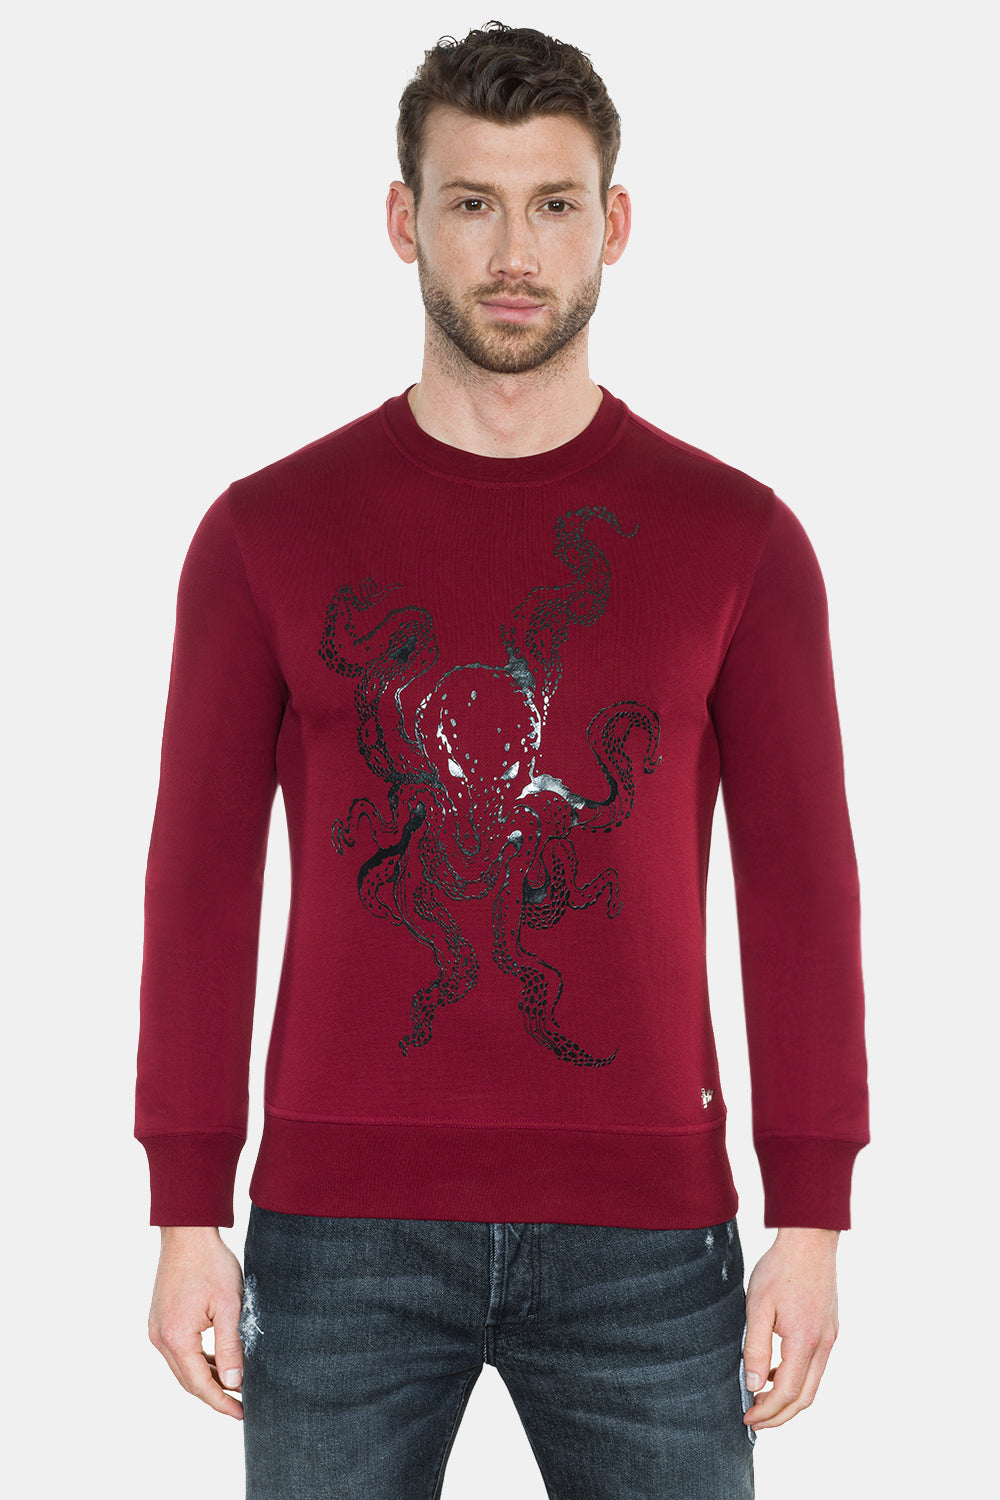 OCTOPUS PRINT SWEATSHIRT - DIMORAL OFFICIAL